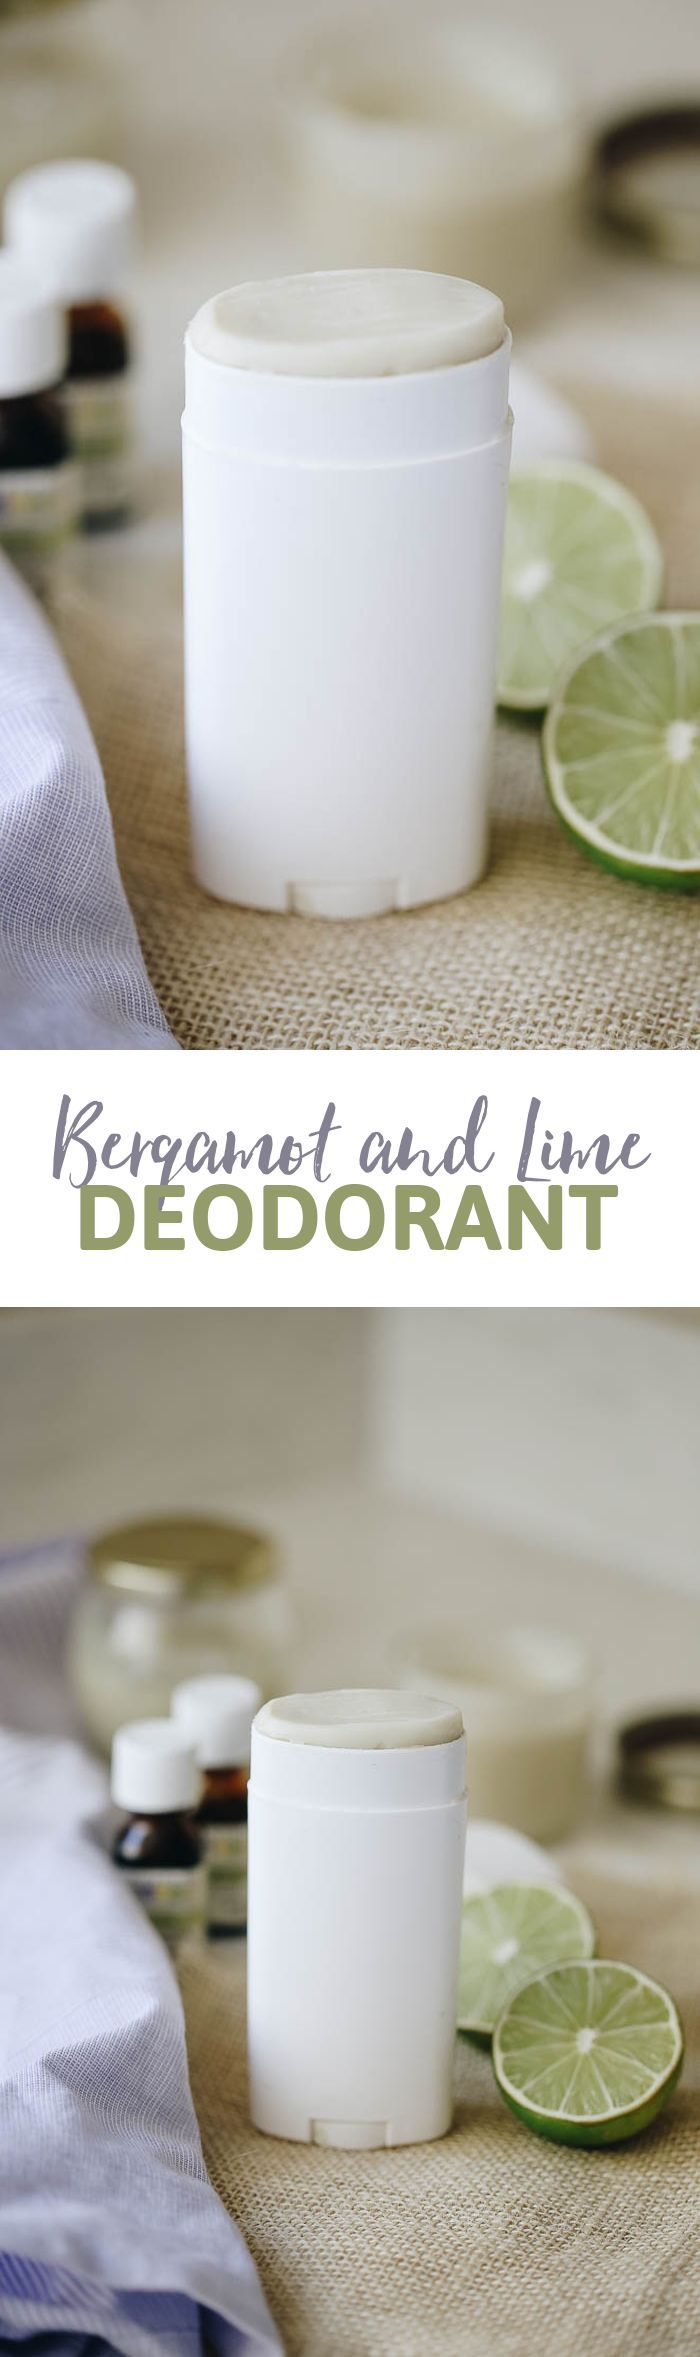 Have you always wanted to try making your own natural deodorant but have been scared to try it out? This DIY recipe for Bergamot and Lime Deodorant is made from non-toxic ingredients, smells amazing and actually works! Learn how to make it here.